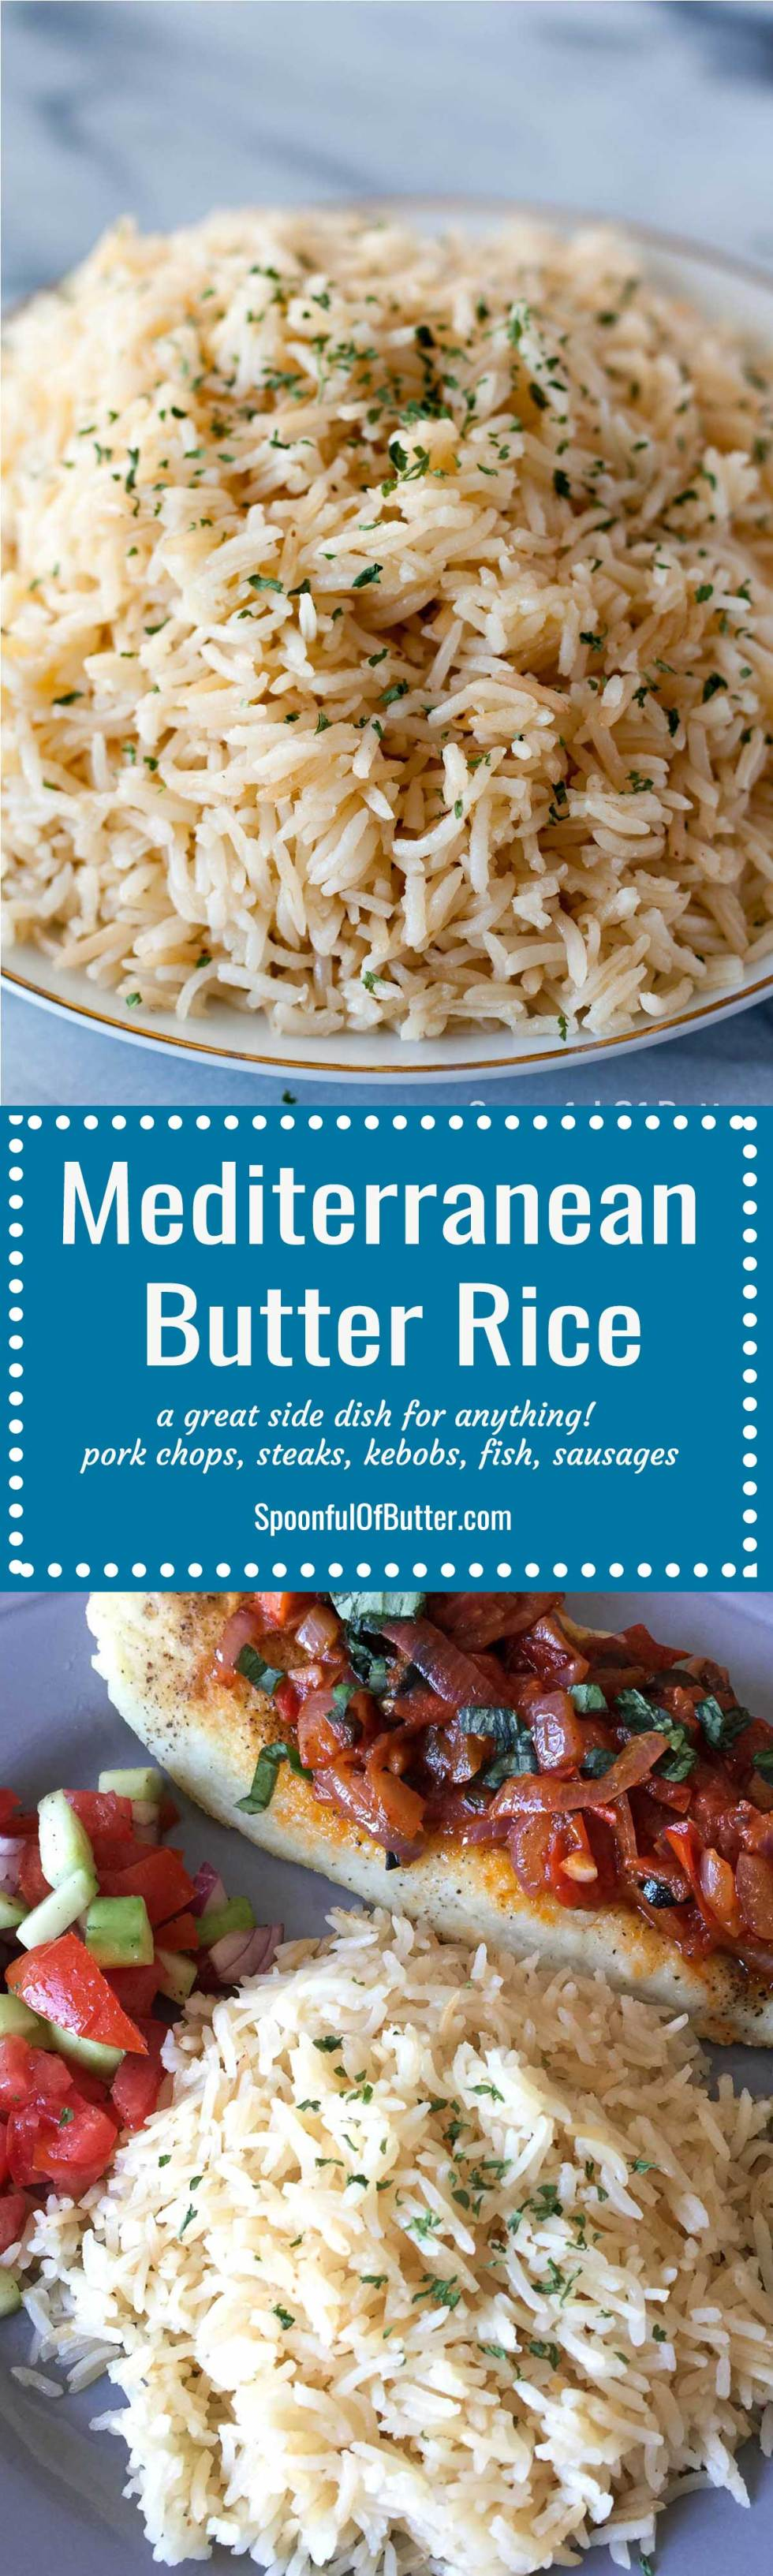 This butter rice goes well with anything – from pork chops, steaks, fish, kebobs, souvlakis, sausages, fried chicken. Has just the right hint of butter and lots of extra flavor from the stock. Up the ante of any dish by serving it with Meditteranean butter rice on the side!